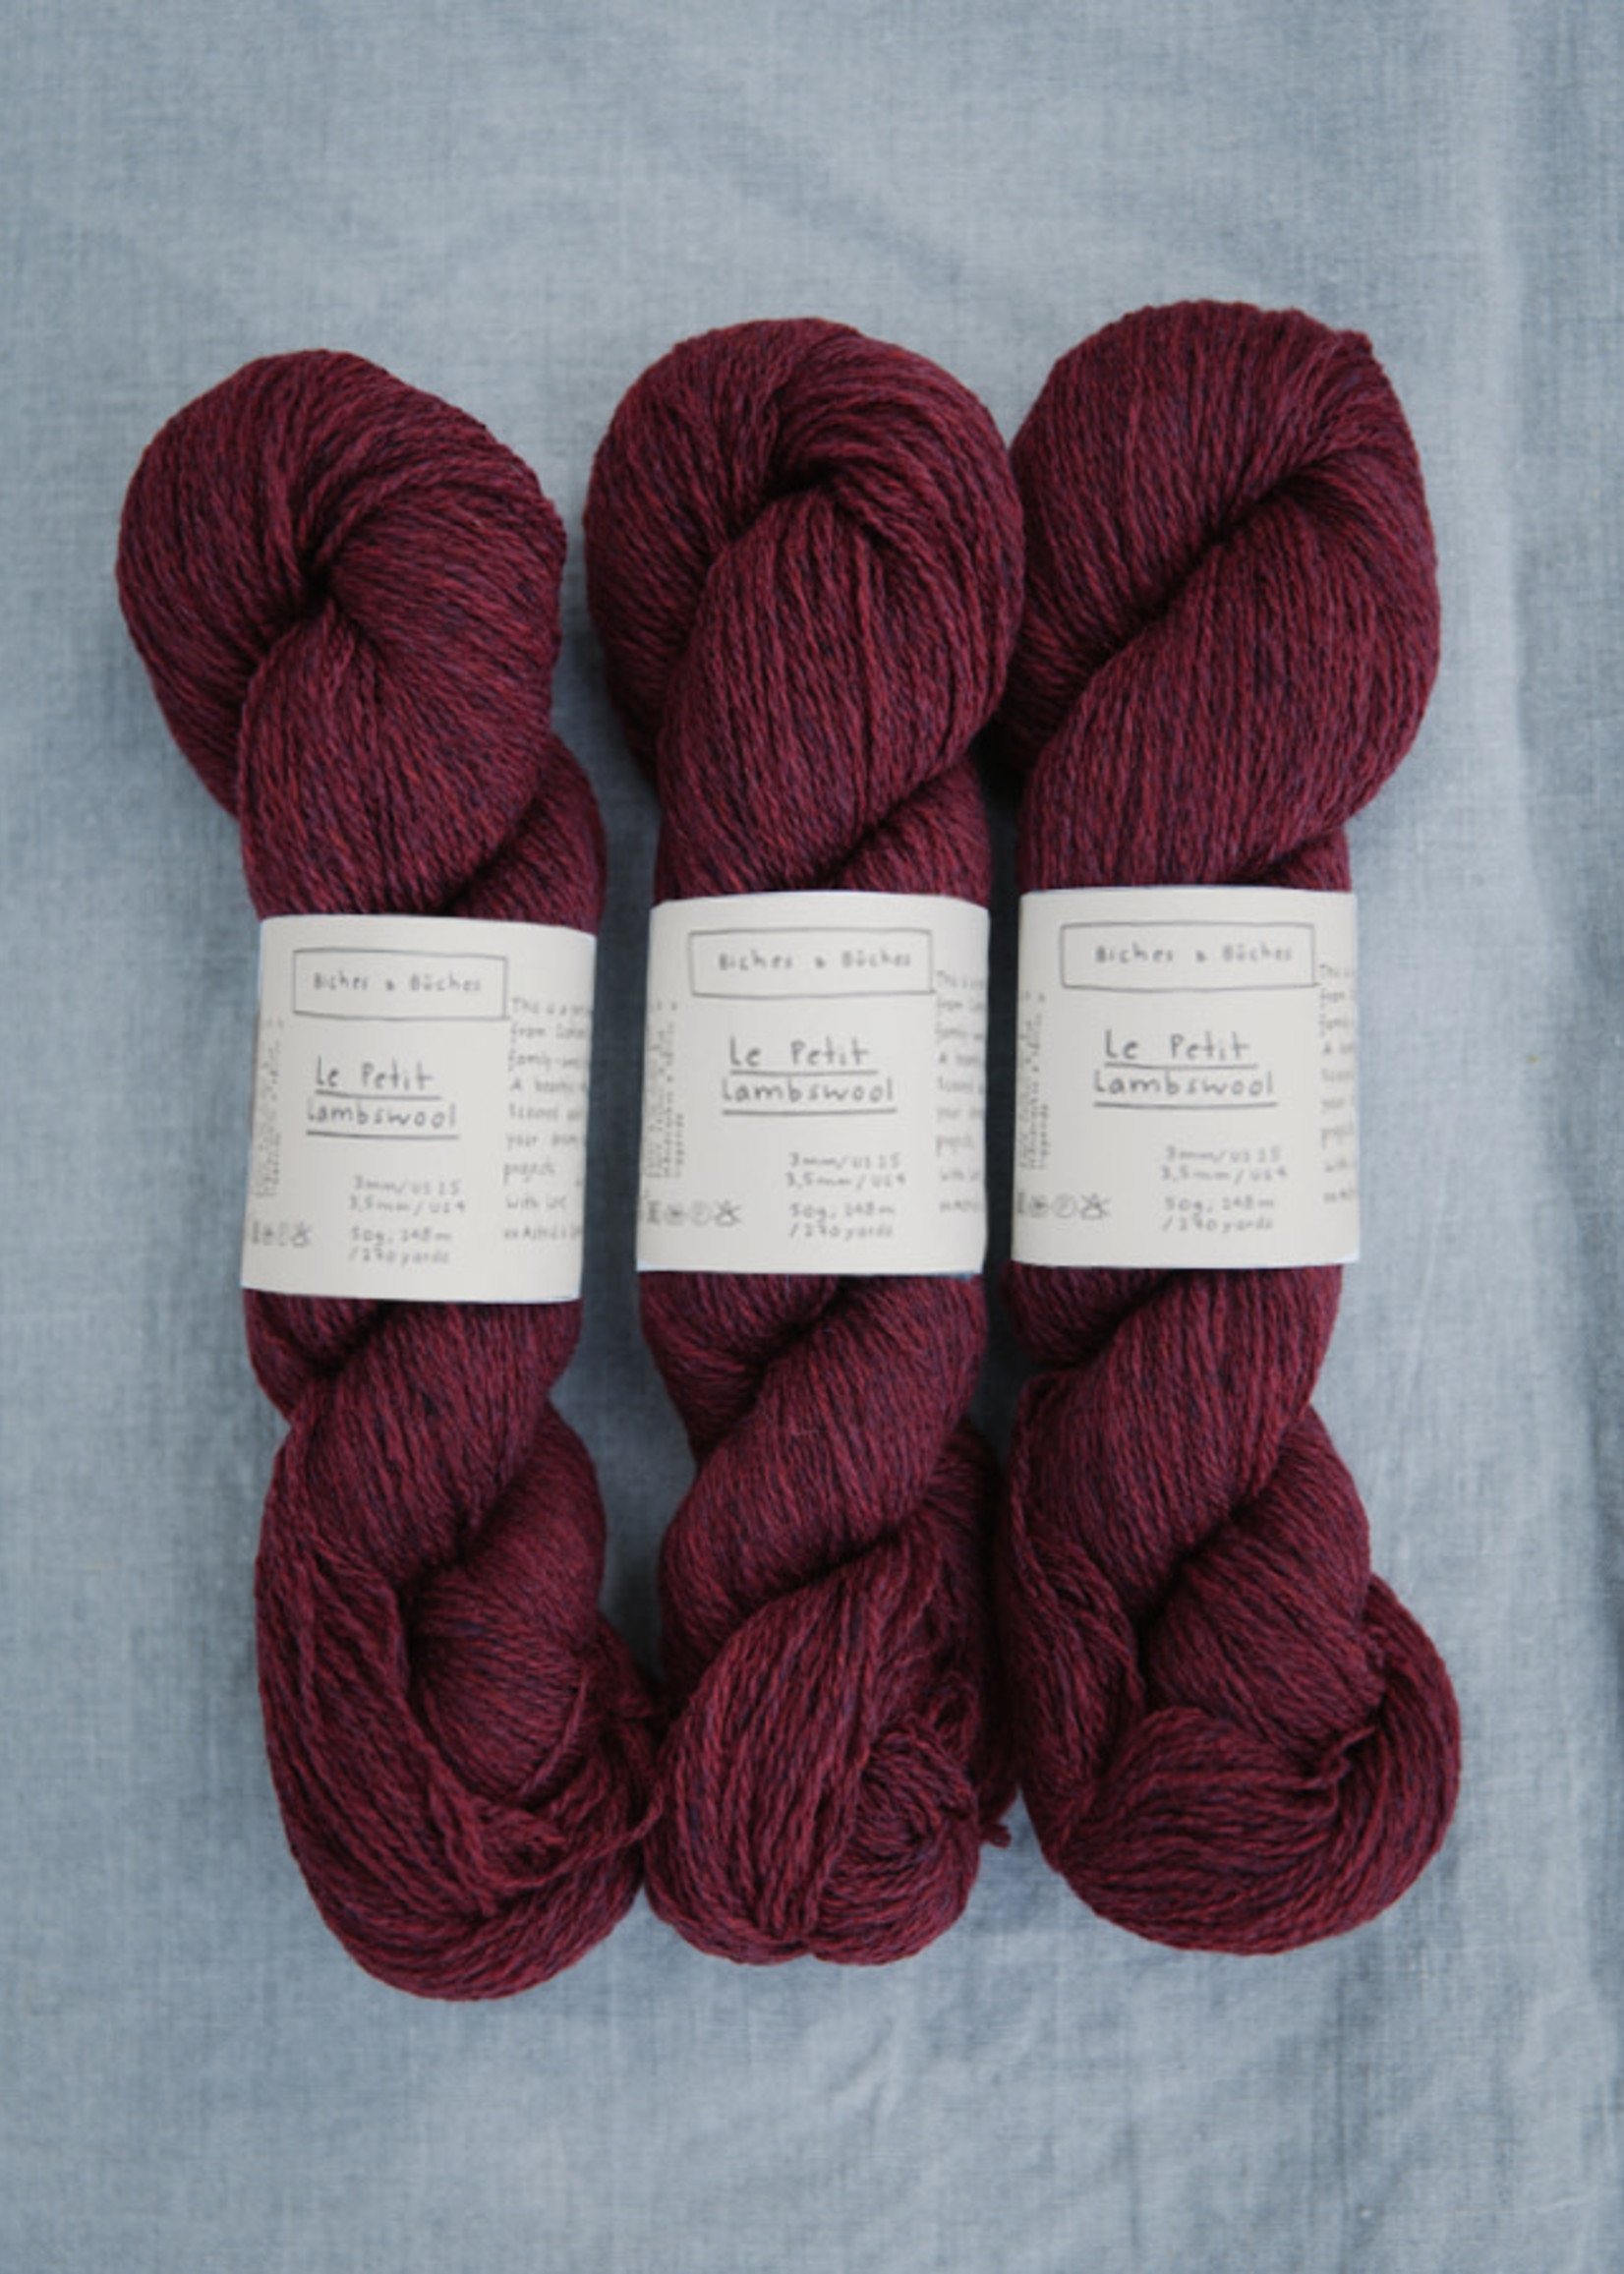 Biches & Bûches Biches & Buches Le Petit Lambswool Norwegian Red